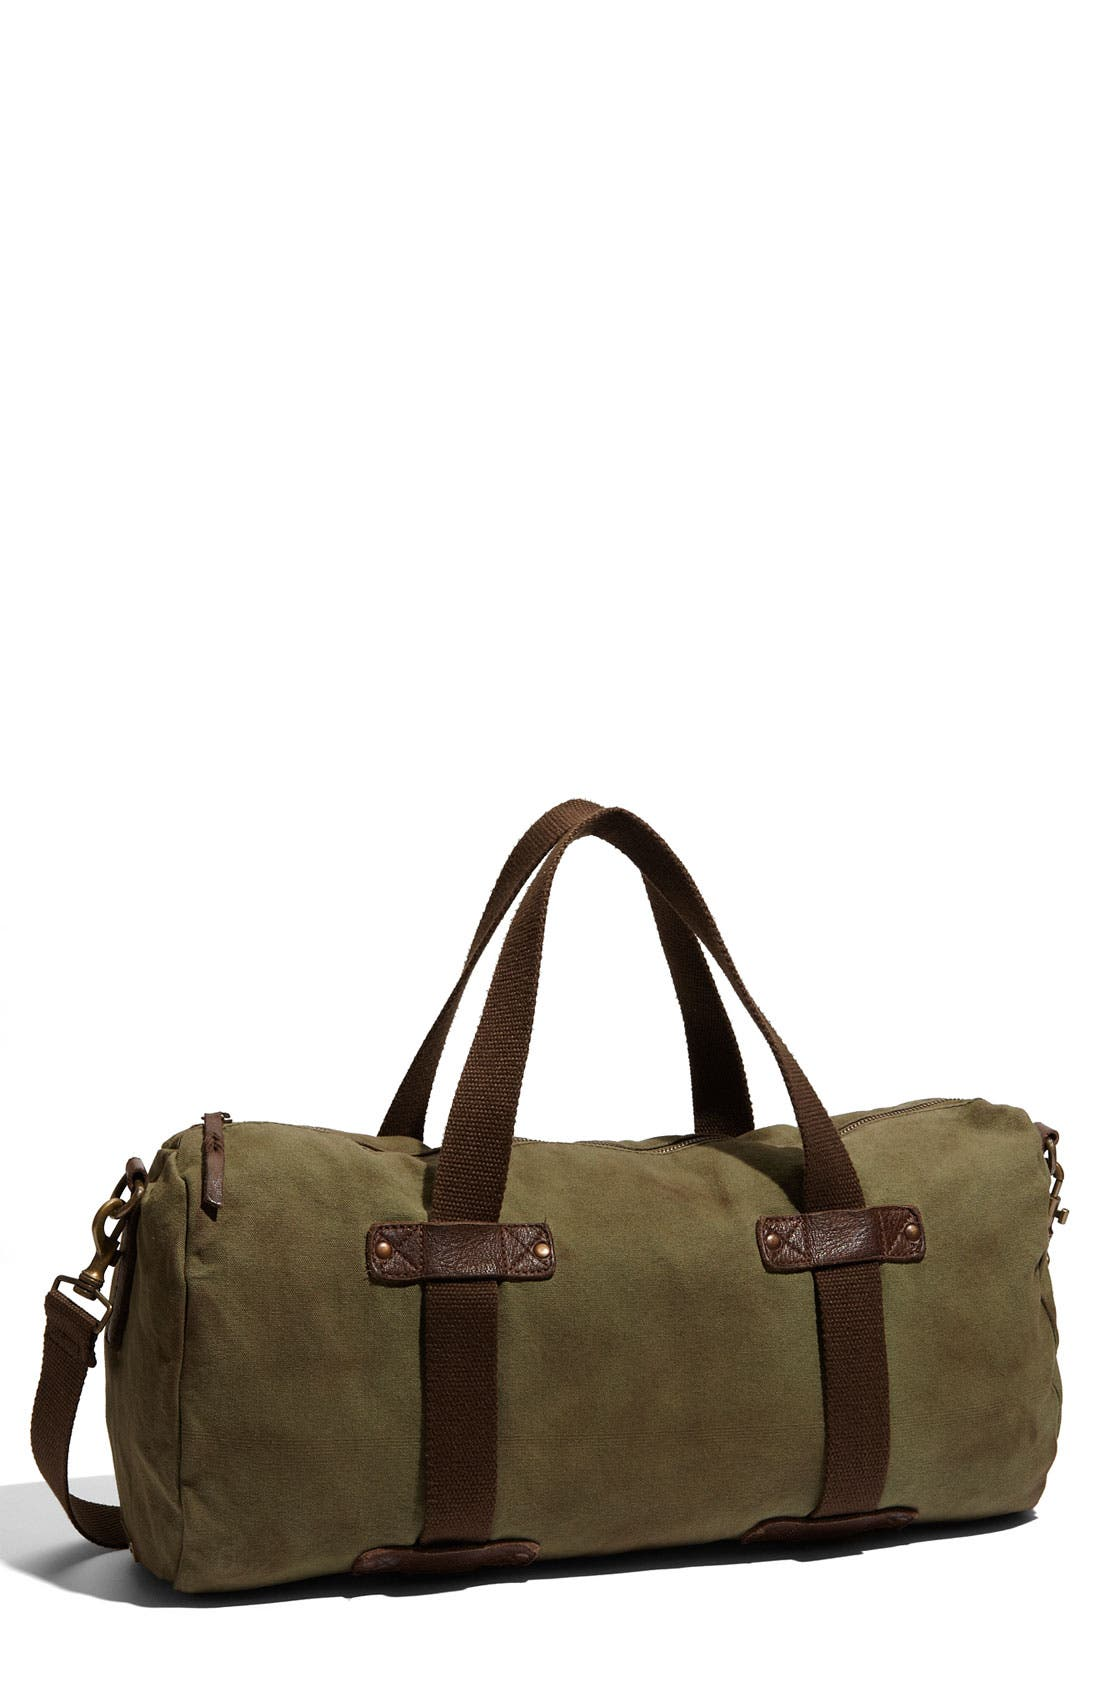 Main Image - Alternative Canvas Duffel Bag